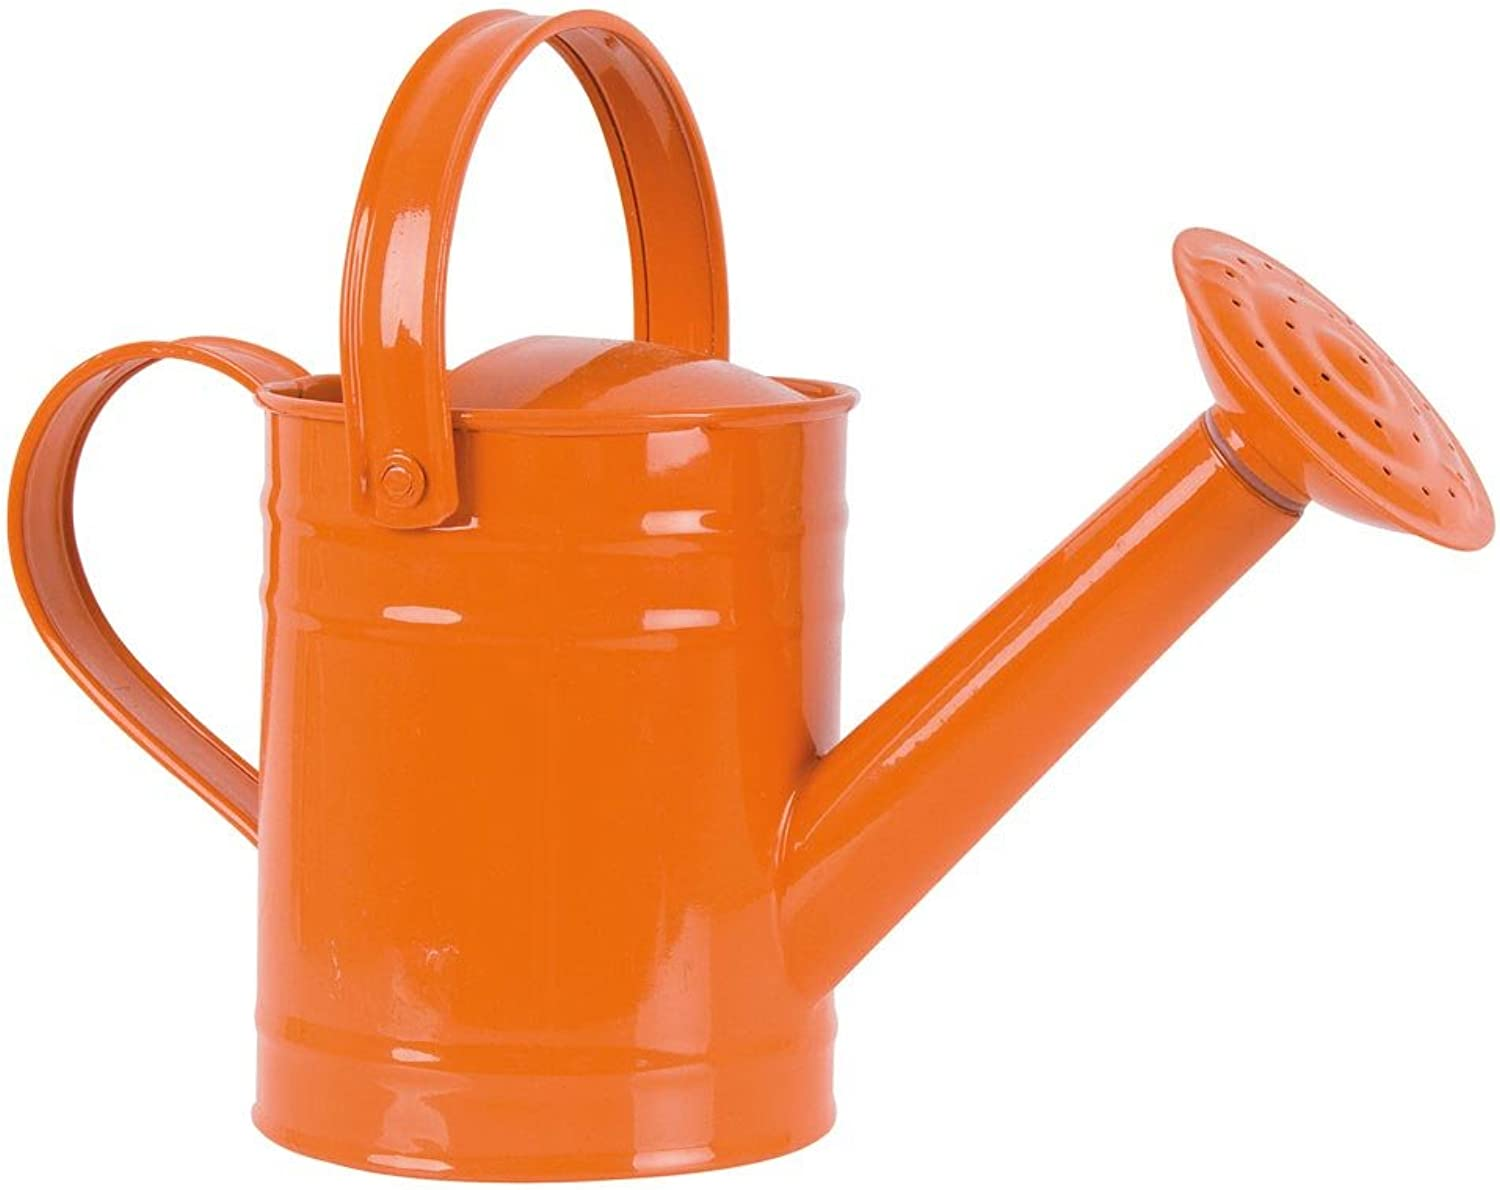 Twigz Kids Gardening Watering Can - Steel - orange